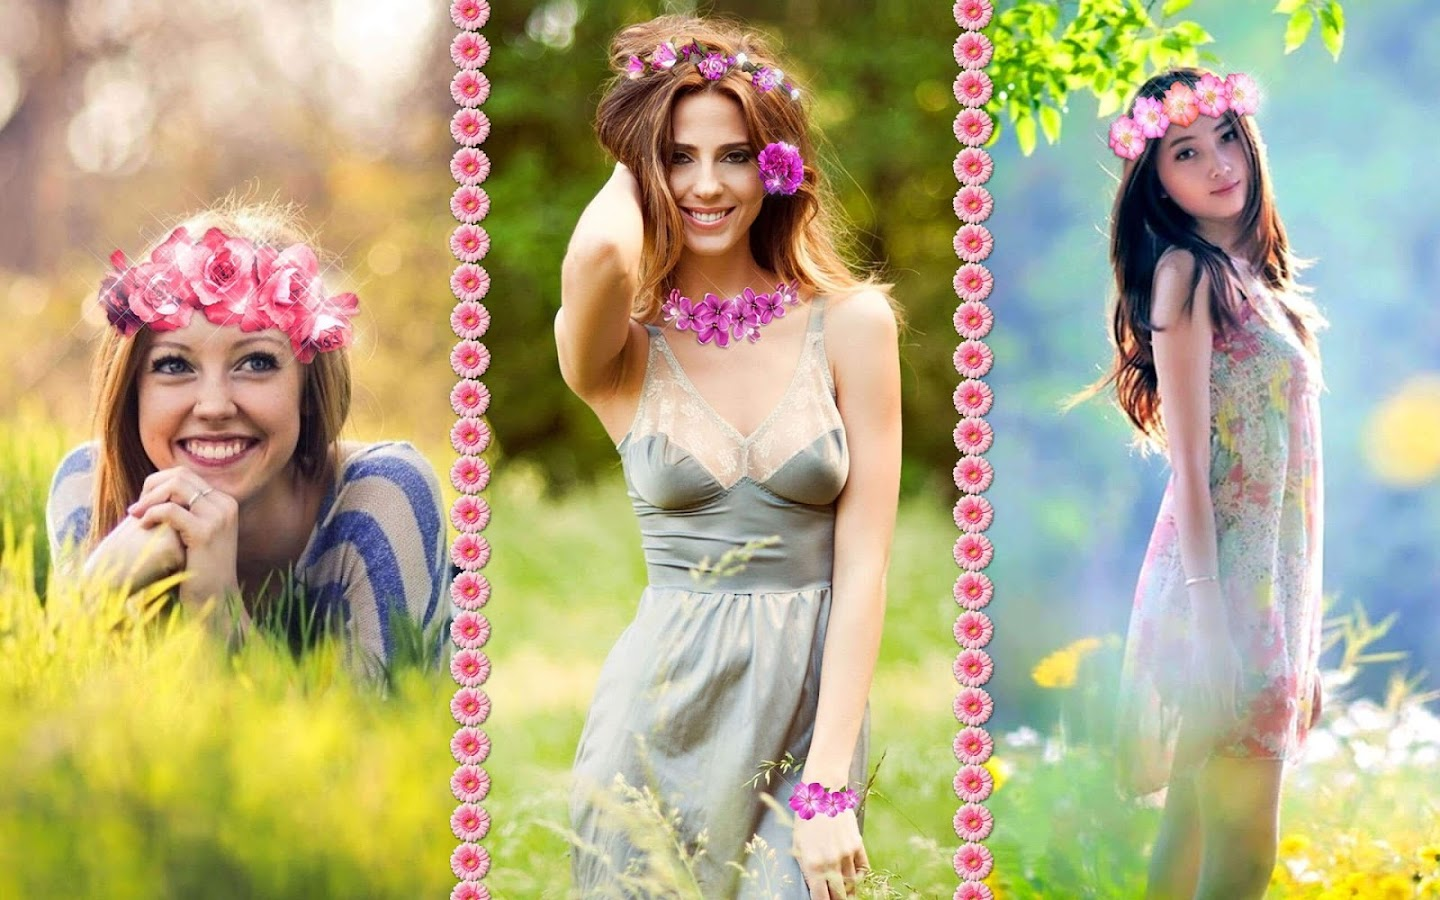 Flower Crown Online Editor Image Collections Wallpaper Hd Photo With